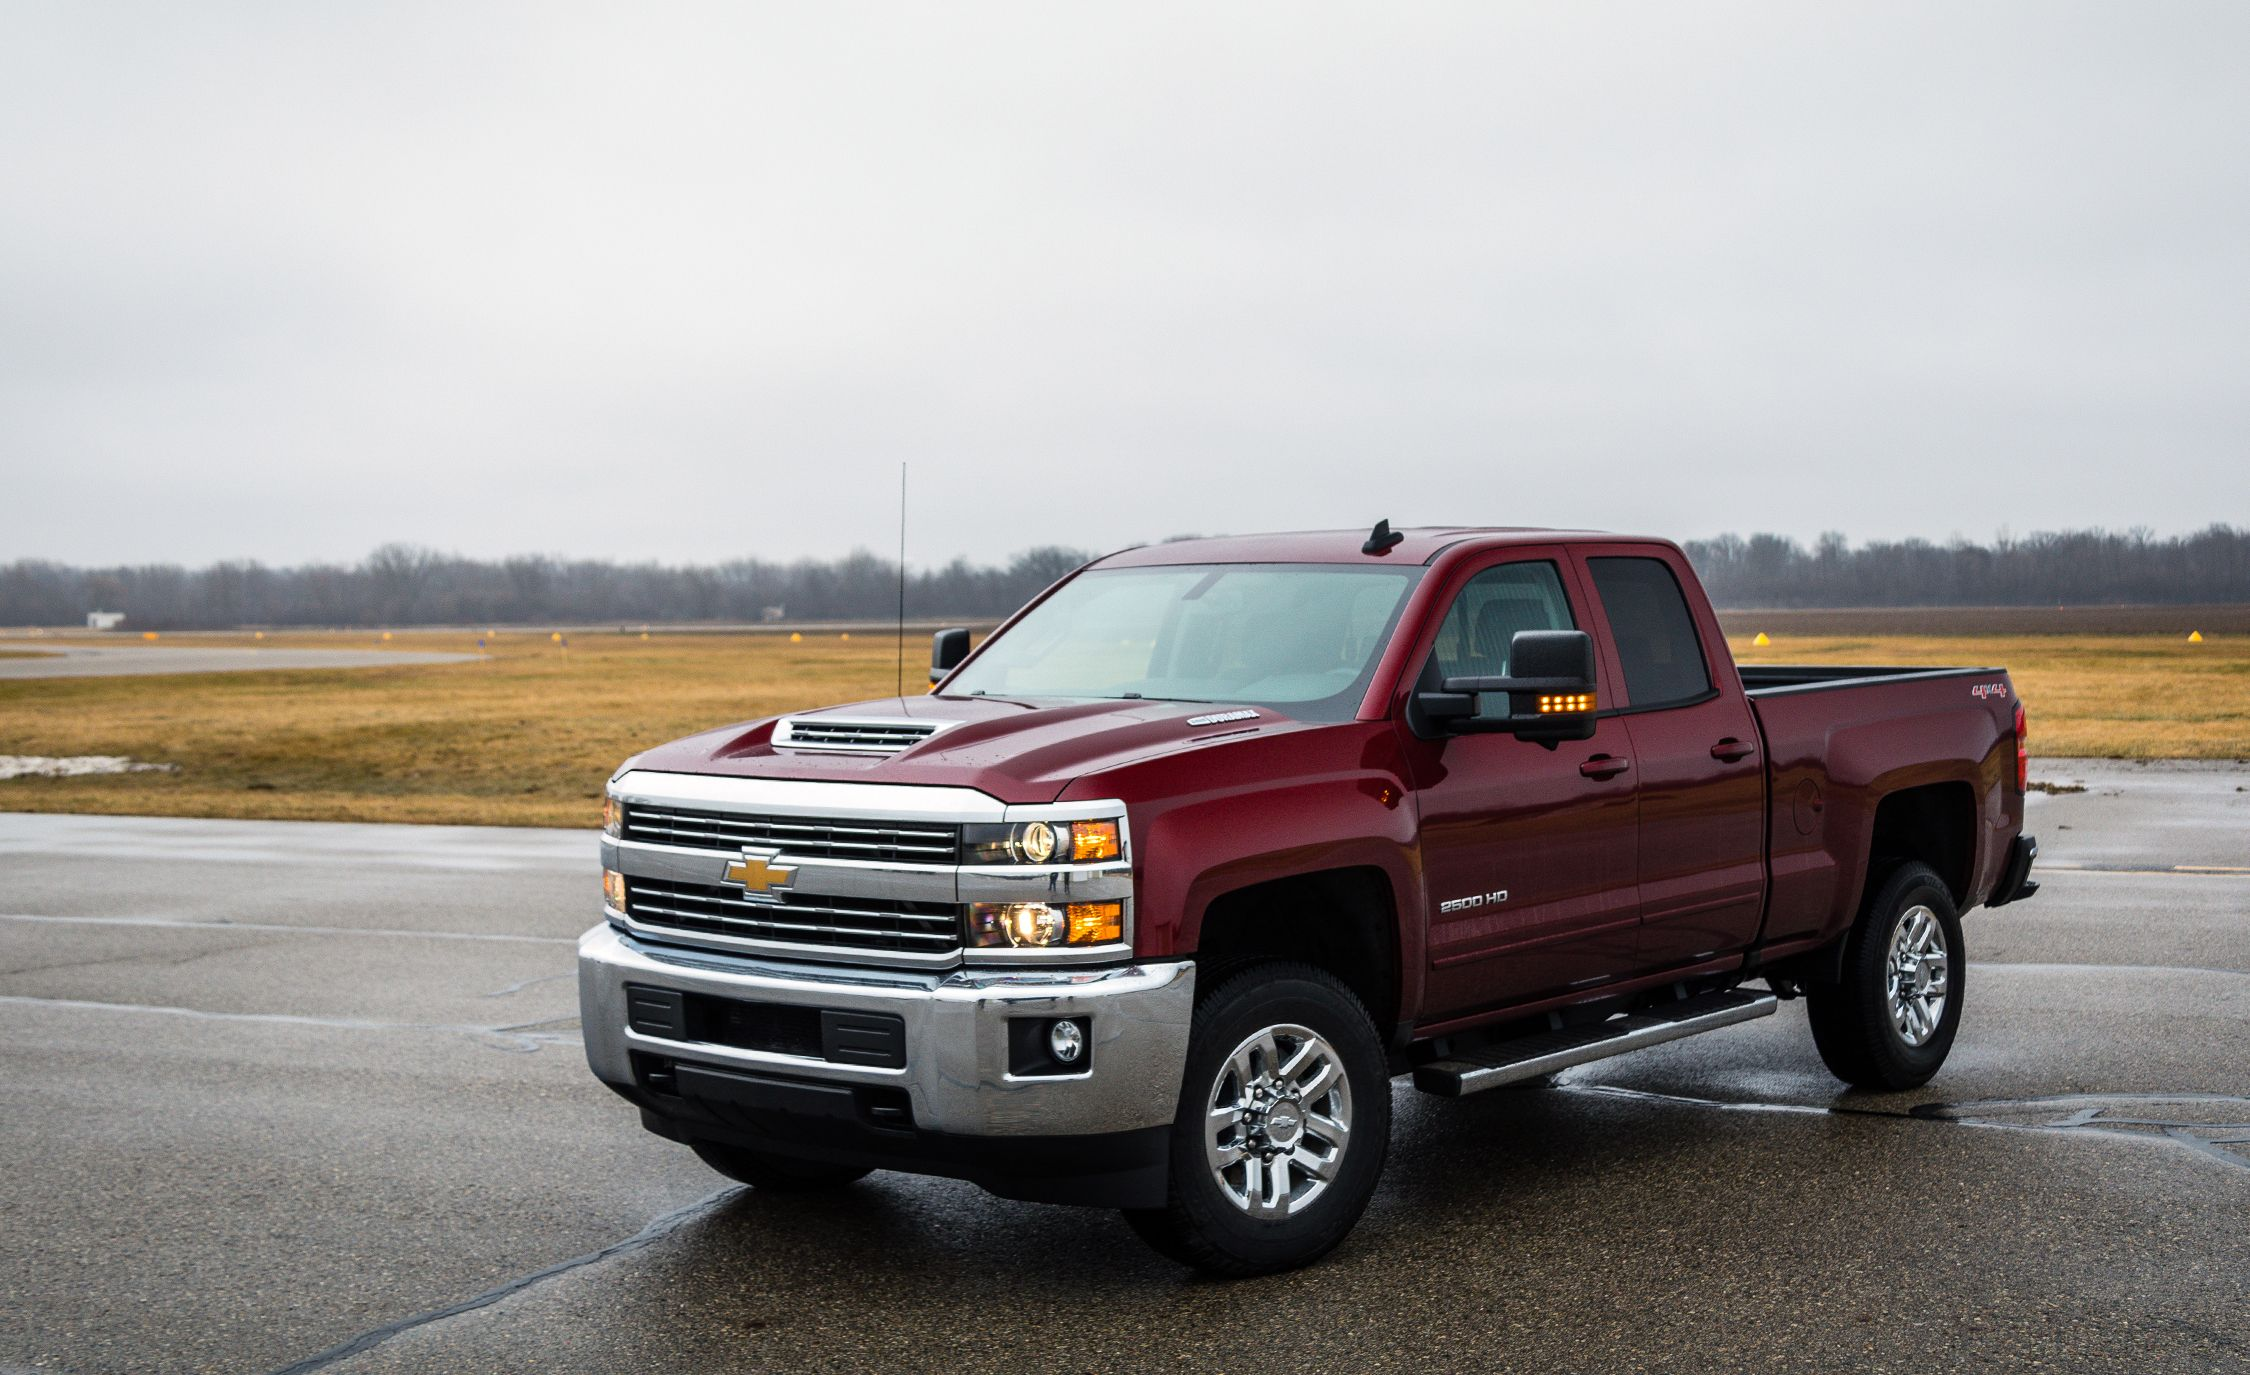 2018 Chevrolet Silverado 2500hd 3500hd Fuel Economy Review Car